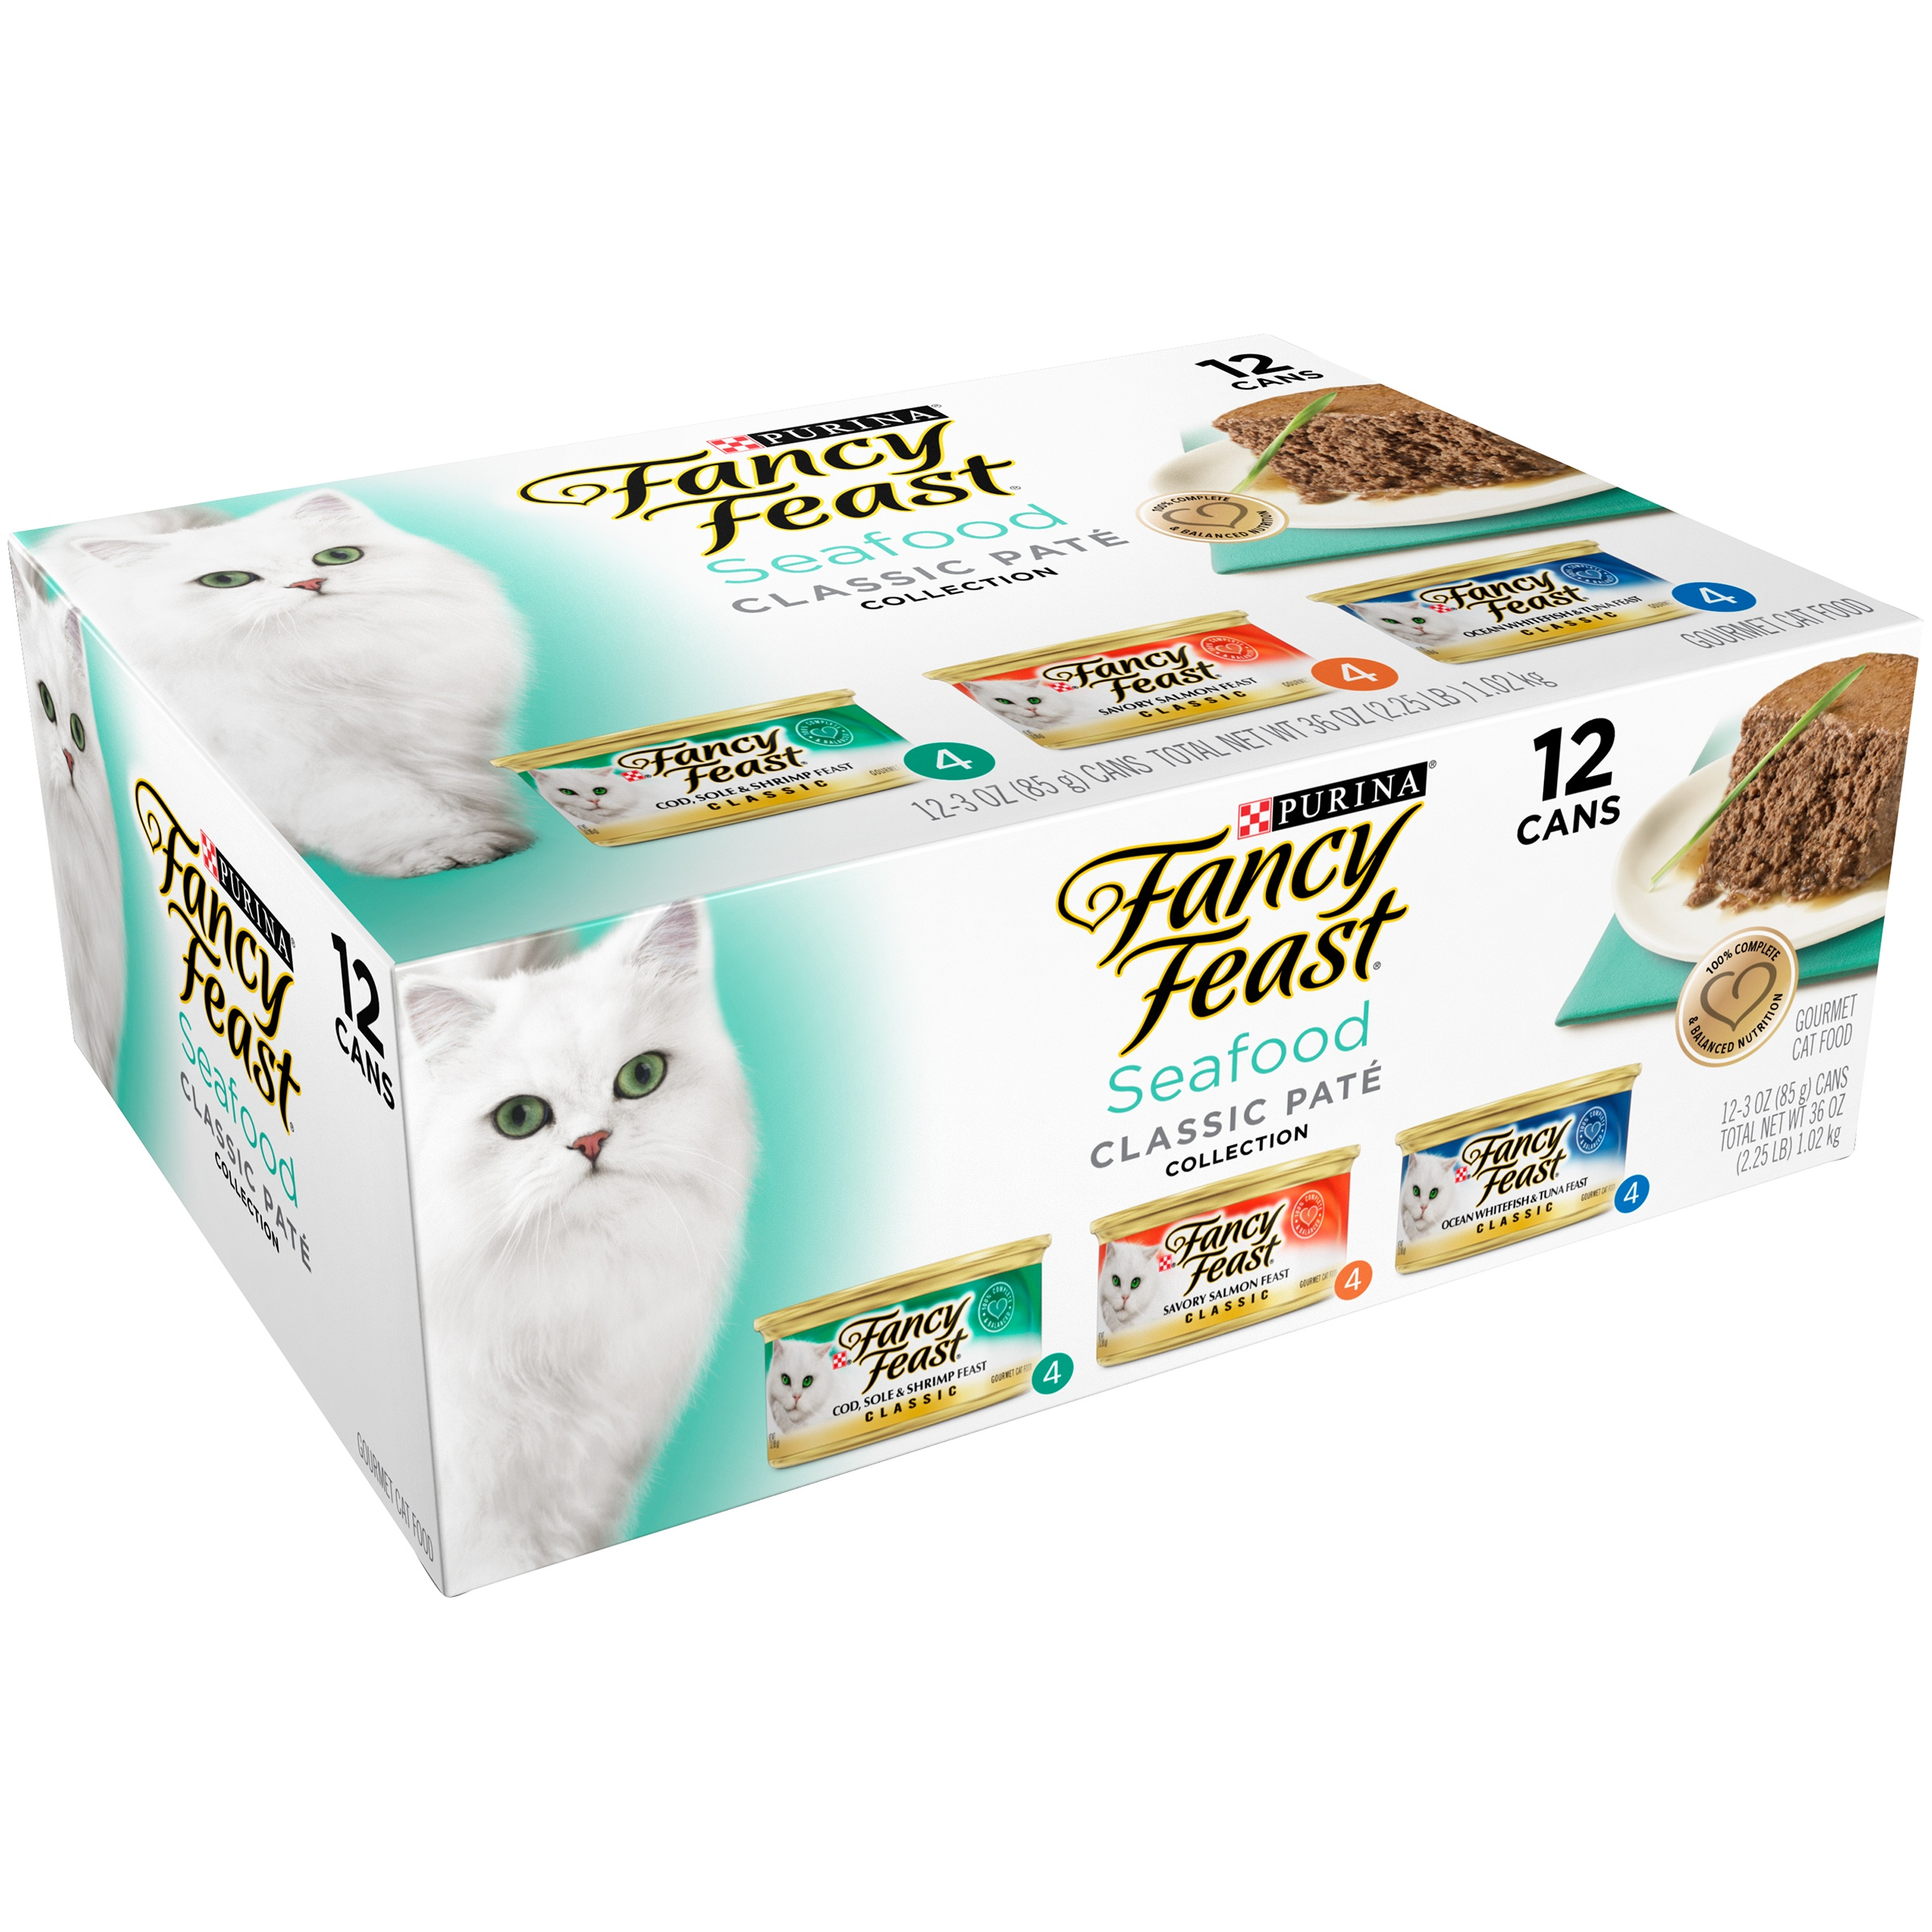 Purina Fancy Feast Classic Seafood Feast Collection Wet Cat Food- (12) 3-oz. Cans